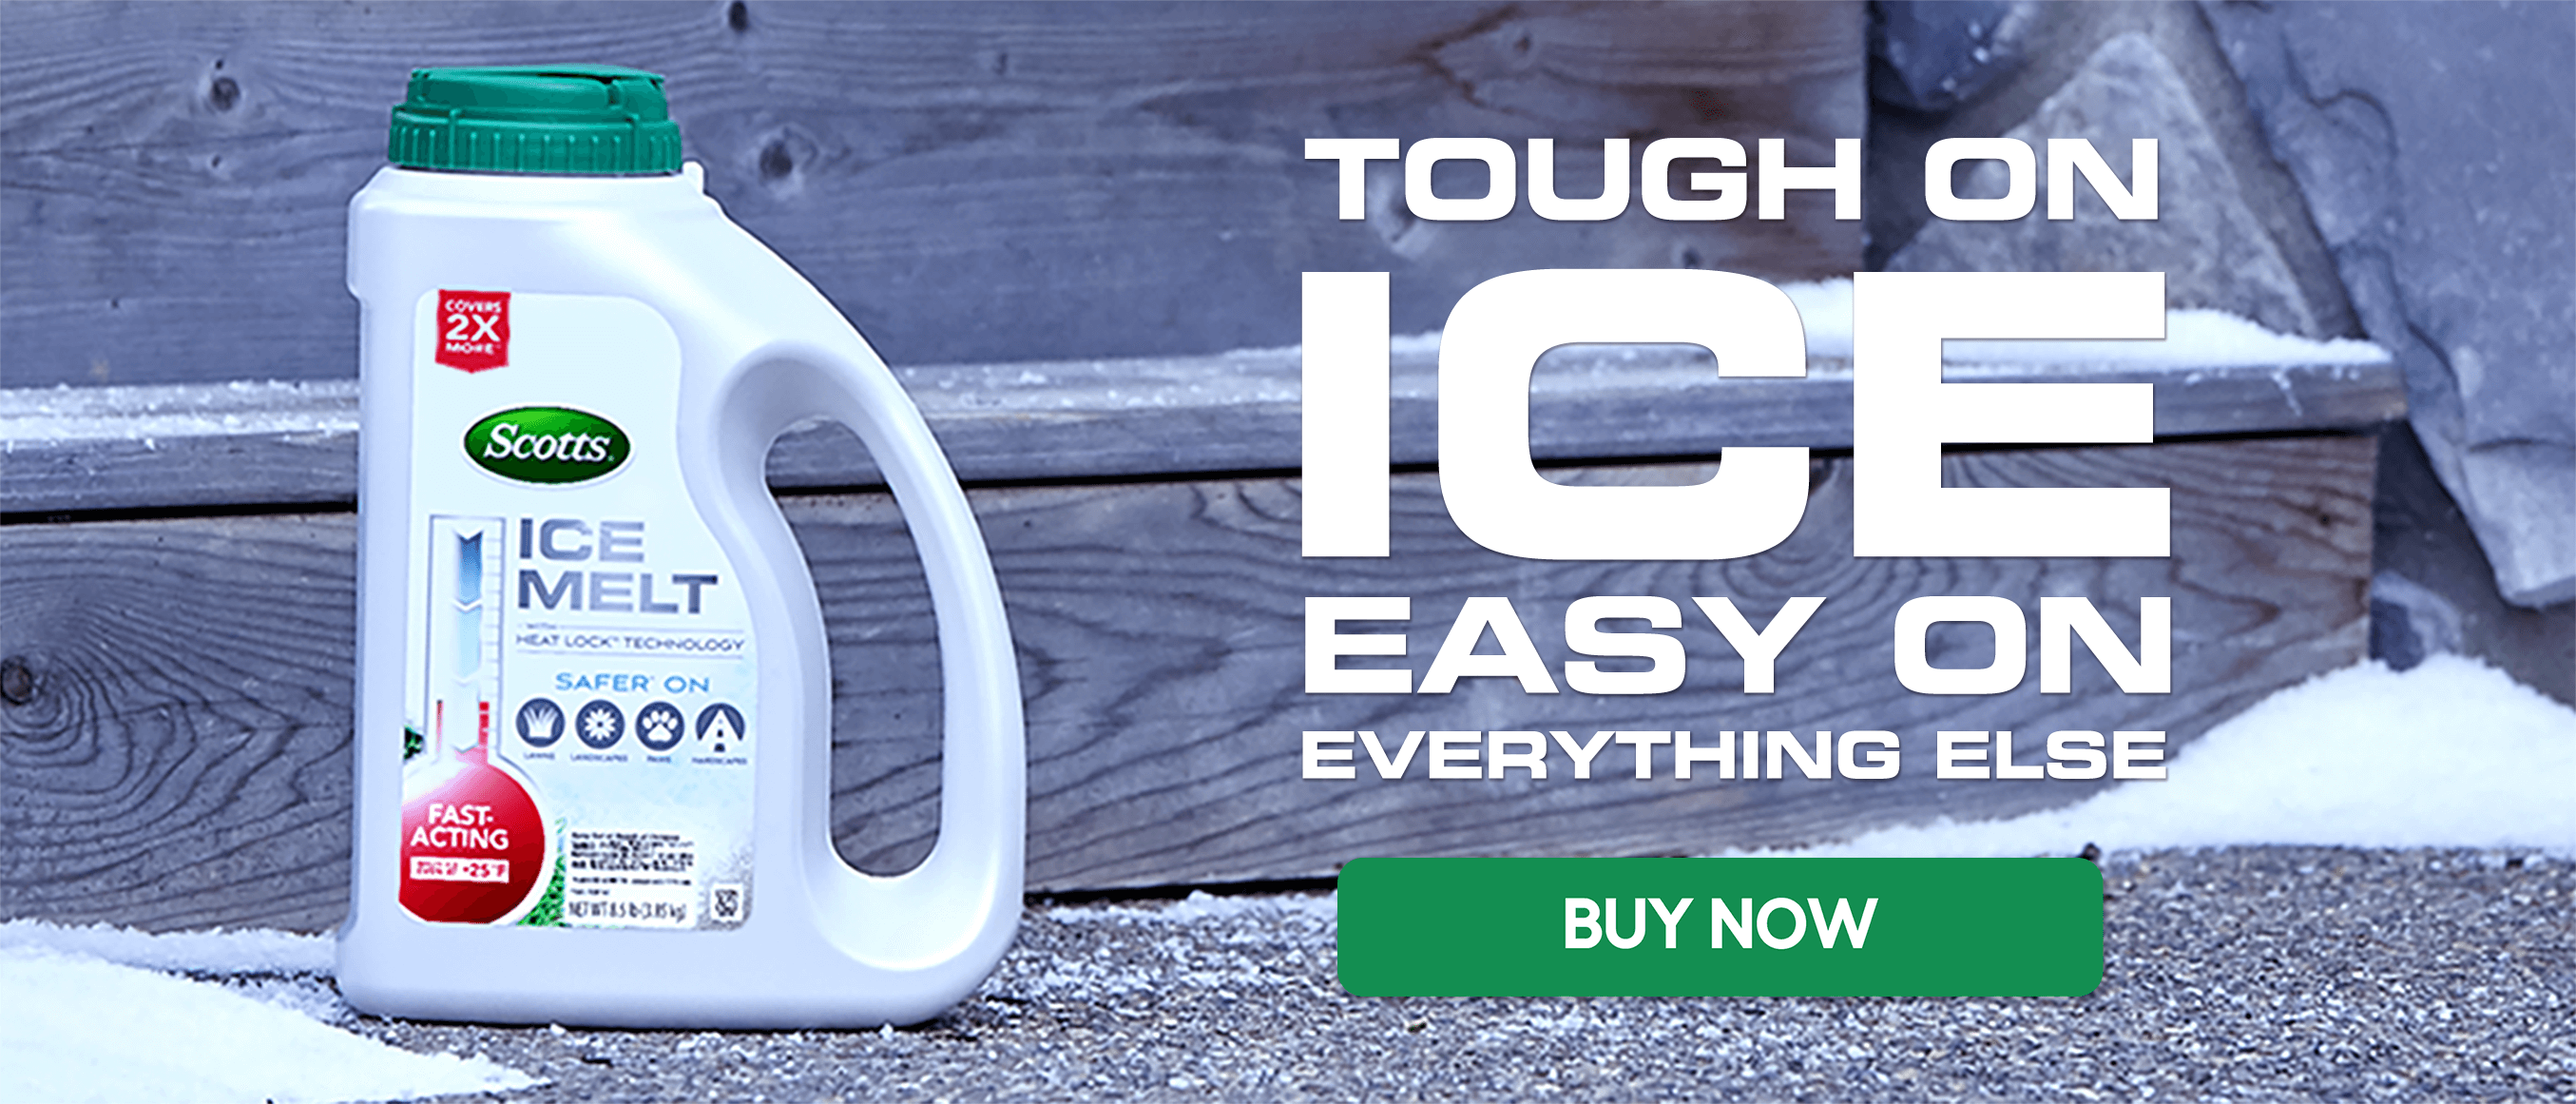 Scotts Ice Melt - Tough on Ice, Easy on Everything Else - Buy Now